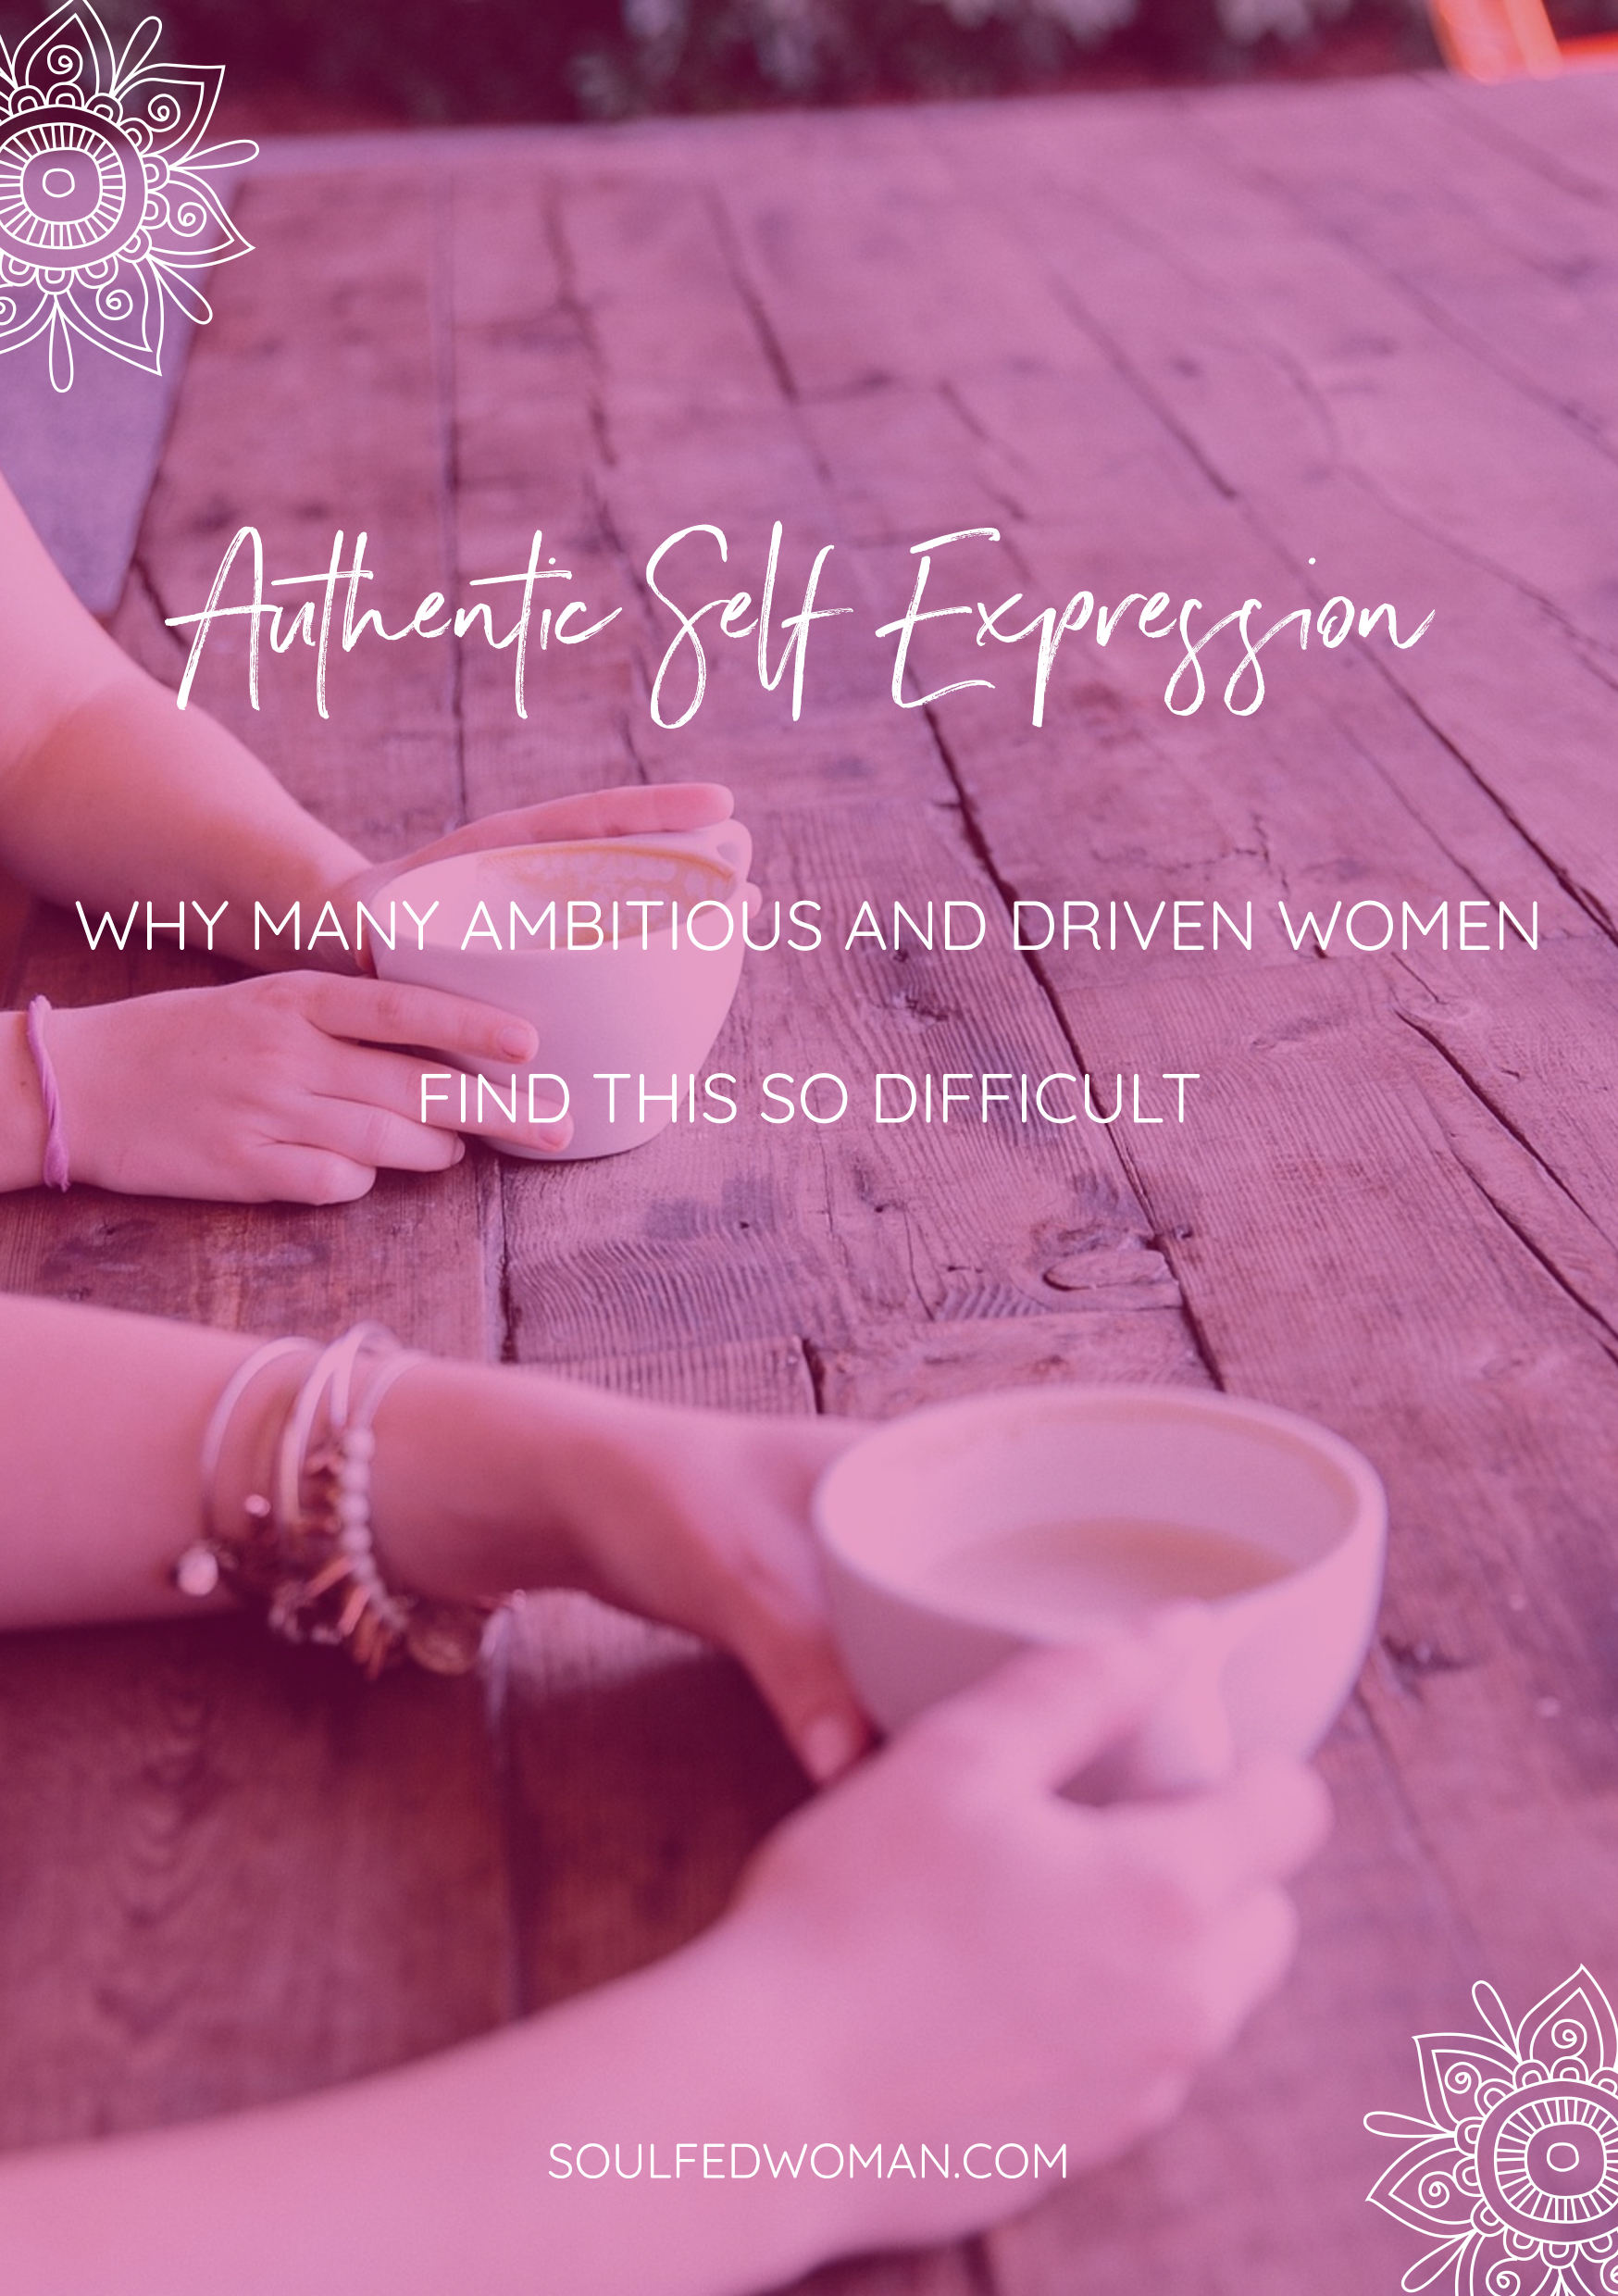 Do you struggle with expressing yourself? Many ambitious and driven women like you find authentic self expression challenging. Let's find out why